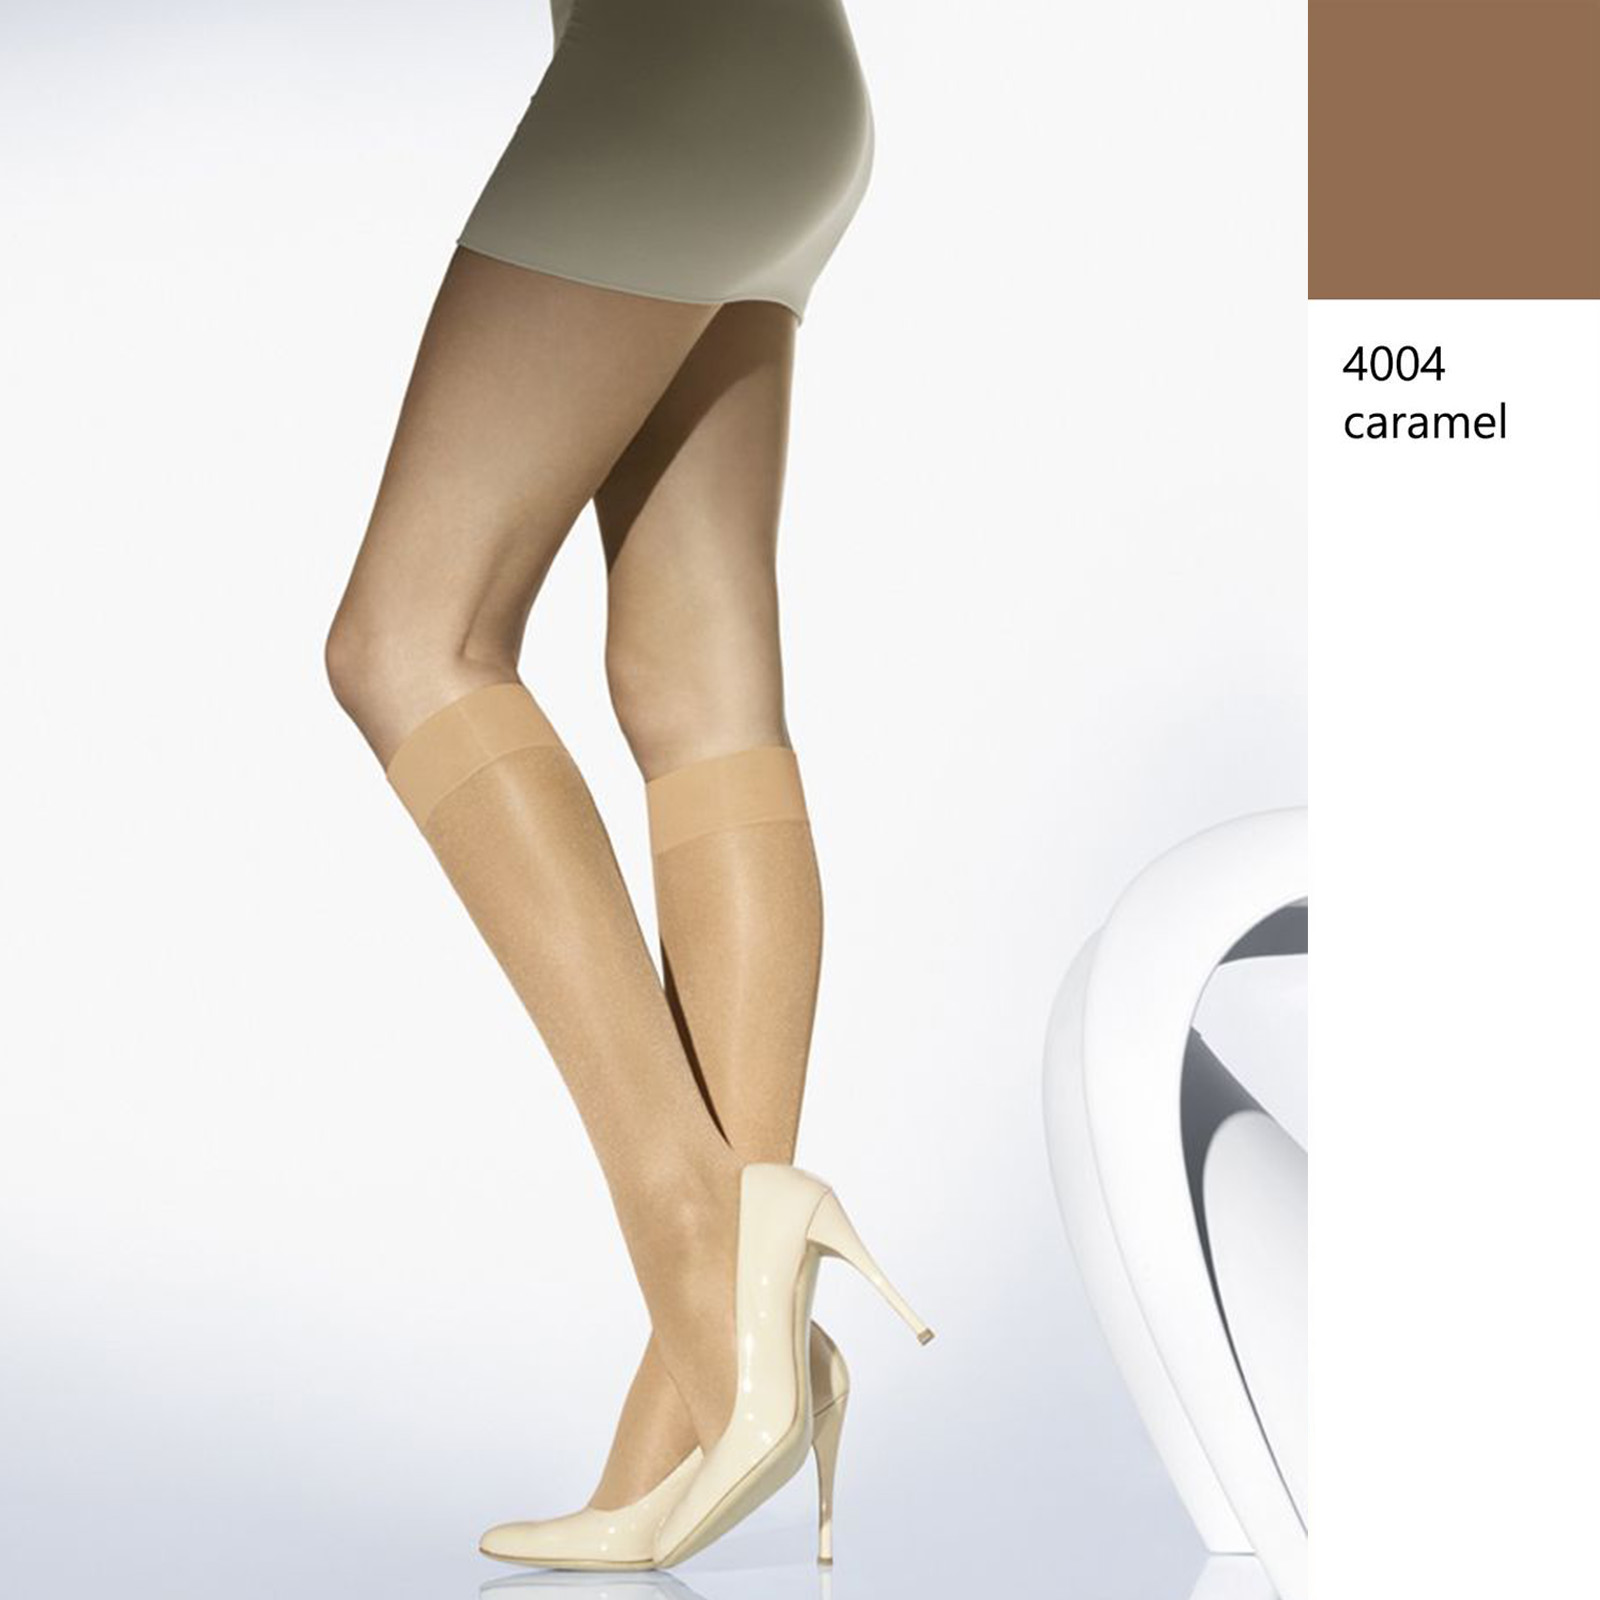 c25d83b47842a Wolford Satin Touch 20 Knee-Highs 31206 order online   Oxener Shoes